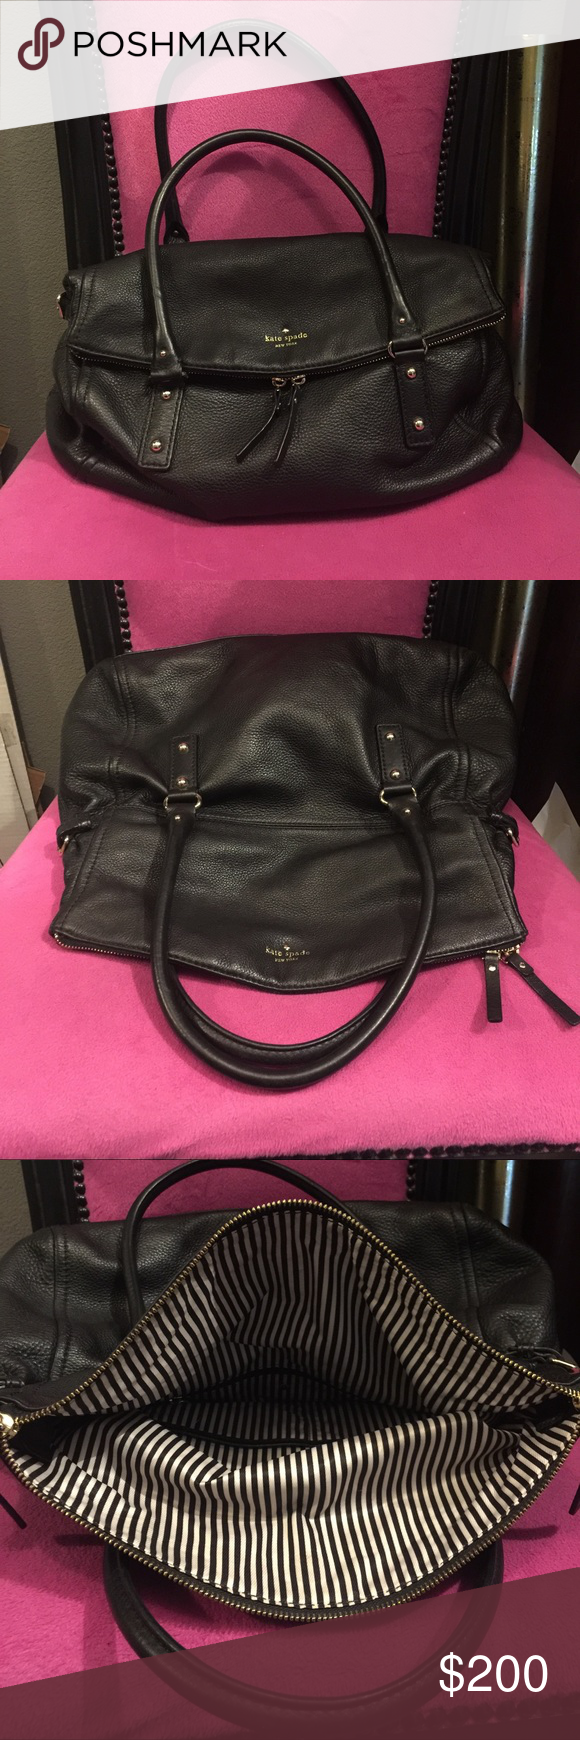 Giant Kate ♠️ Spade Bag!! This beauty is huge and holds everything but the kitchen sink!! Mint condition!!! kate spade Bags Shoulder Bags